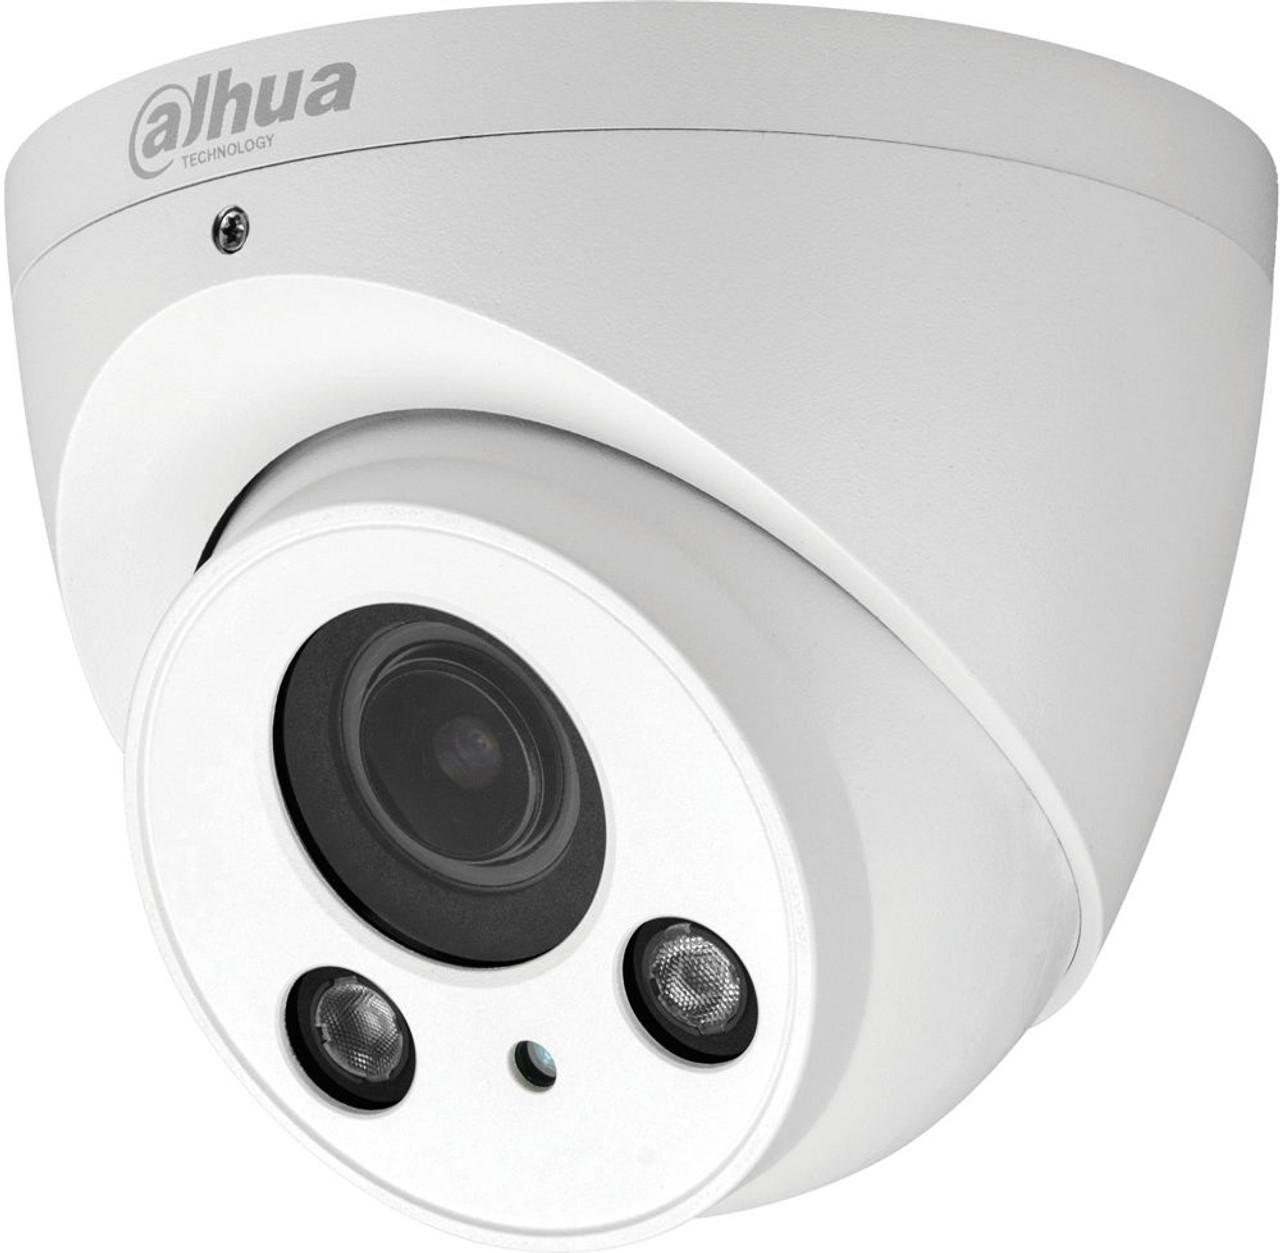 Dahua N42AH3Z 4MP IR Indoor/Outdoor Eyeball IP Security Camera